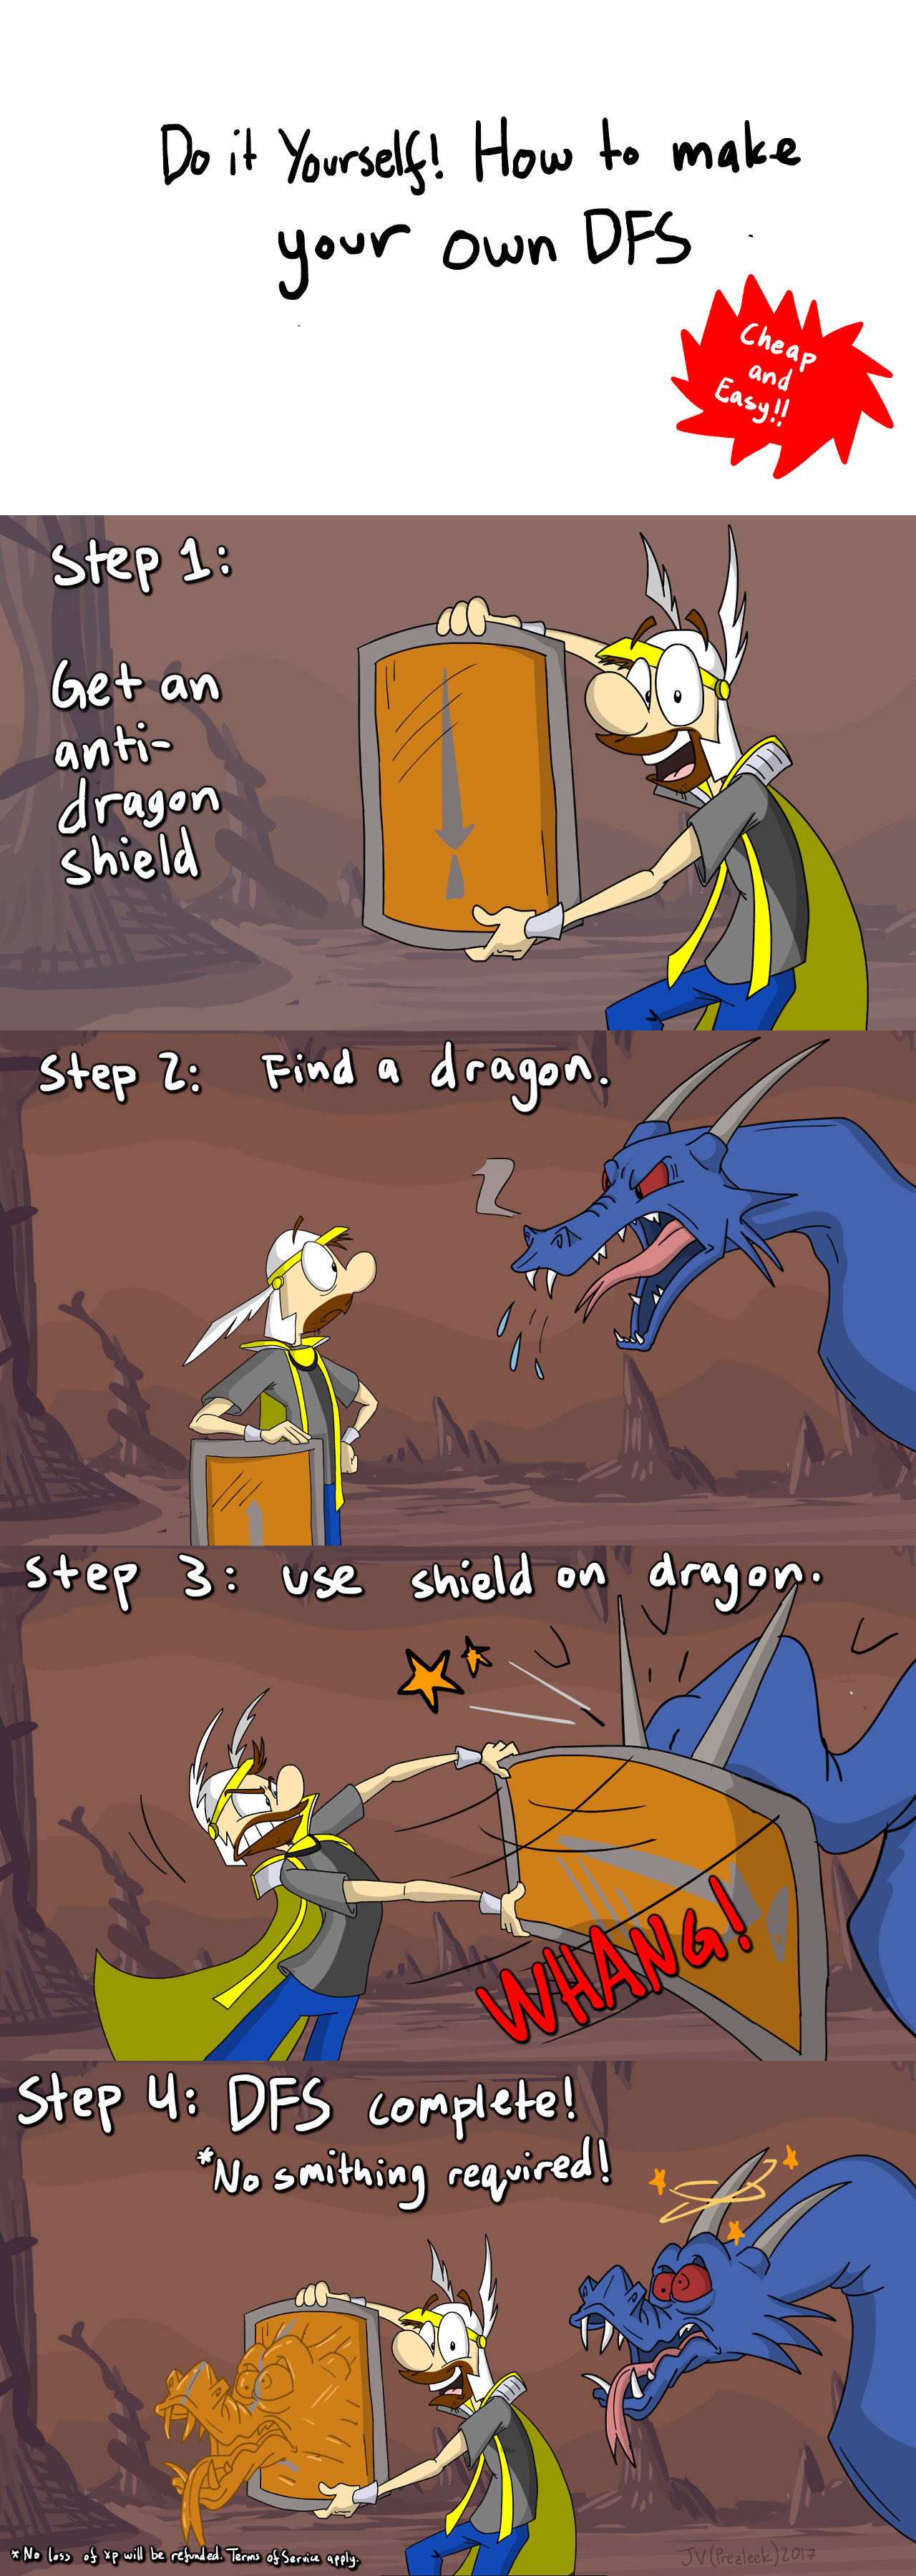 Do it yourself dragonfire shield a video games comic dueling analogs do it yourself dragonfire shield solutioingenieria Image collections